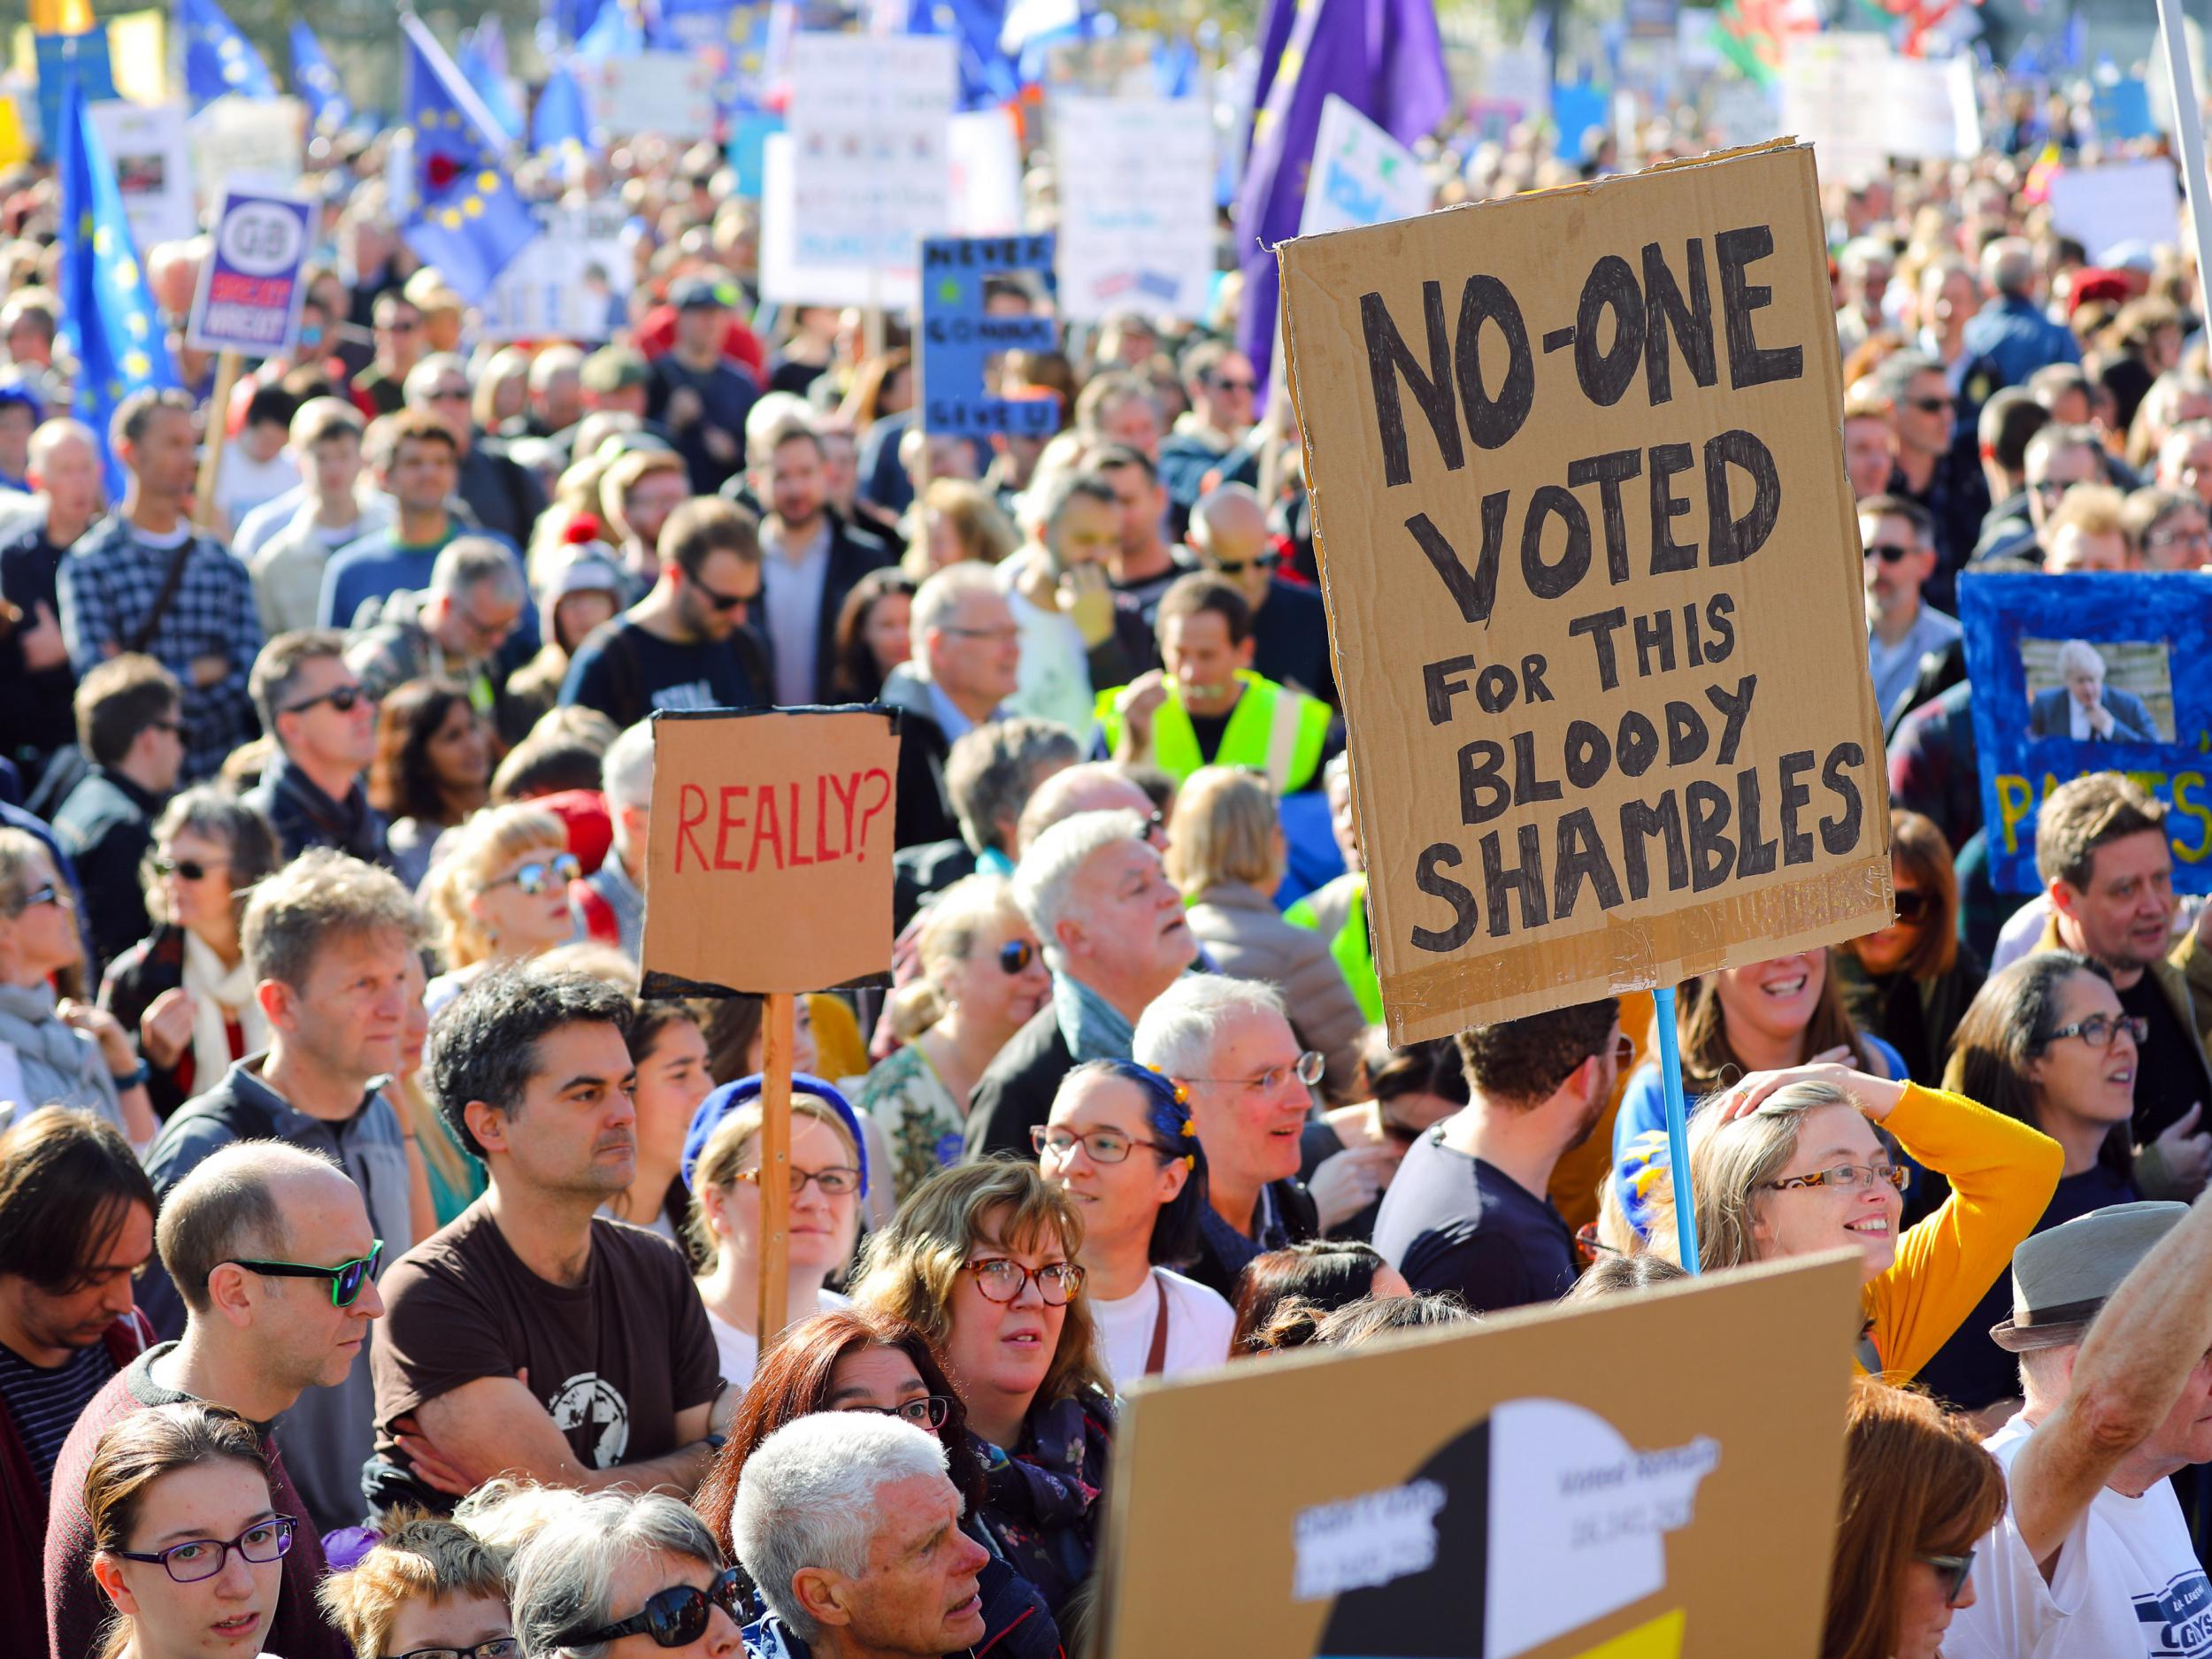 'More than 700,000 protesters' and celebrities join second largest protest in UK this century